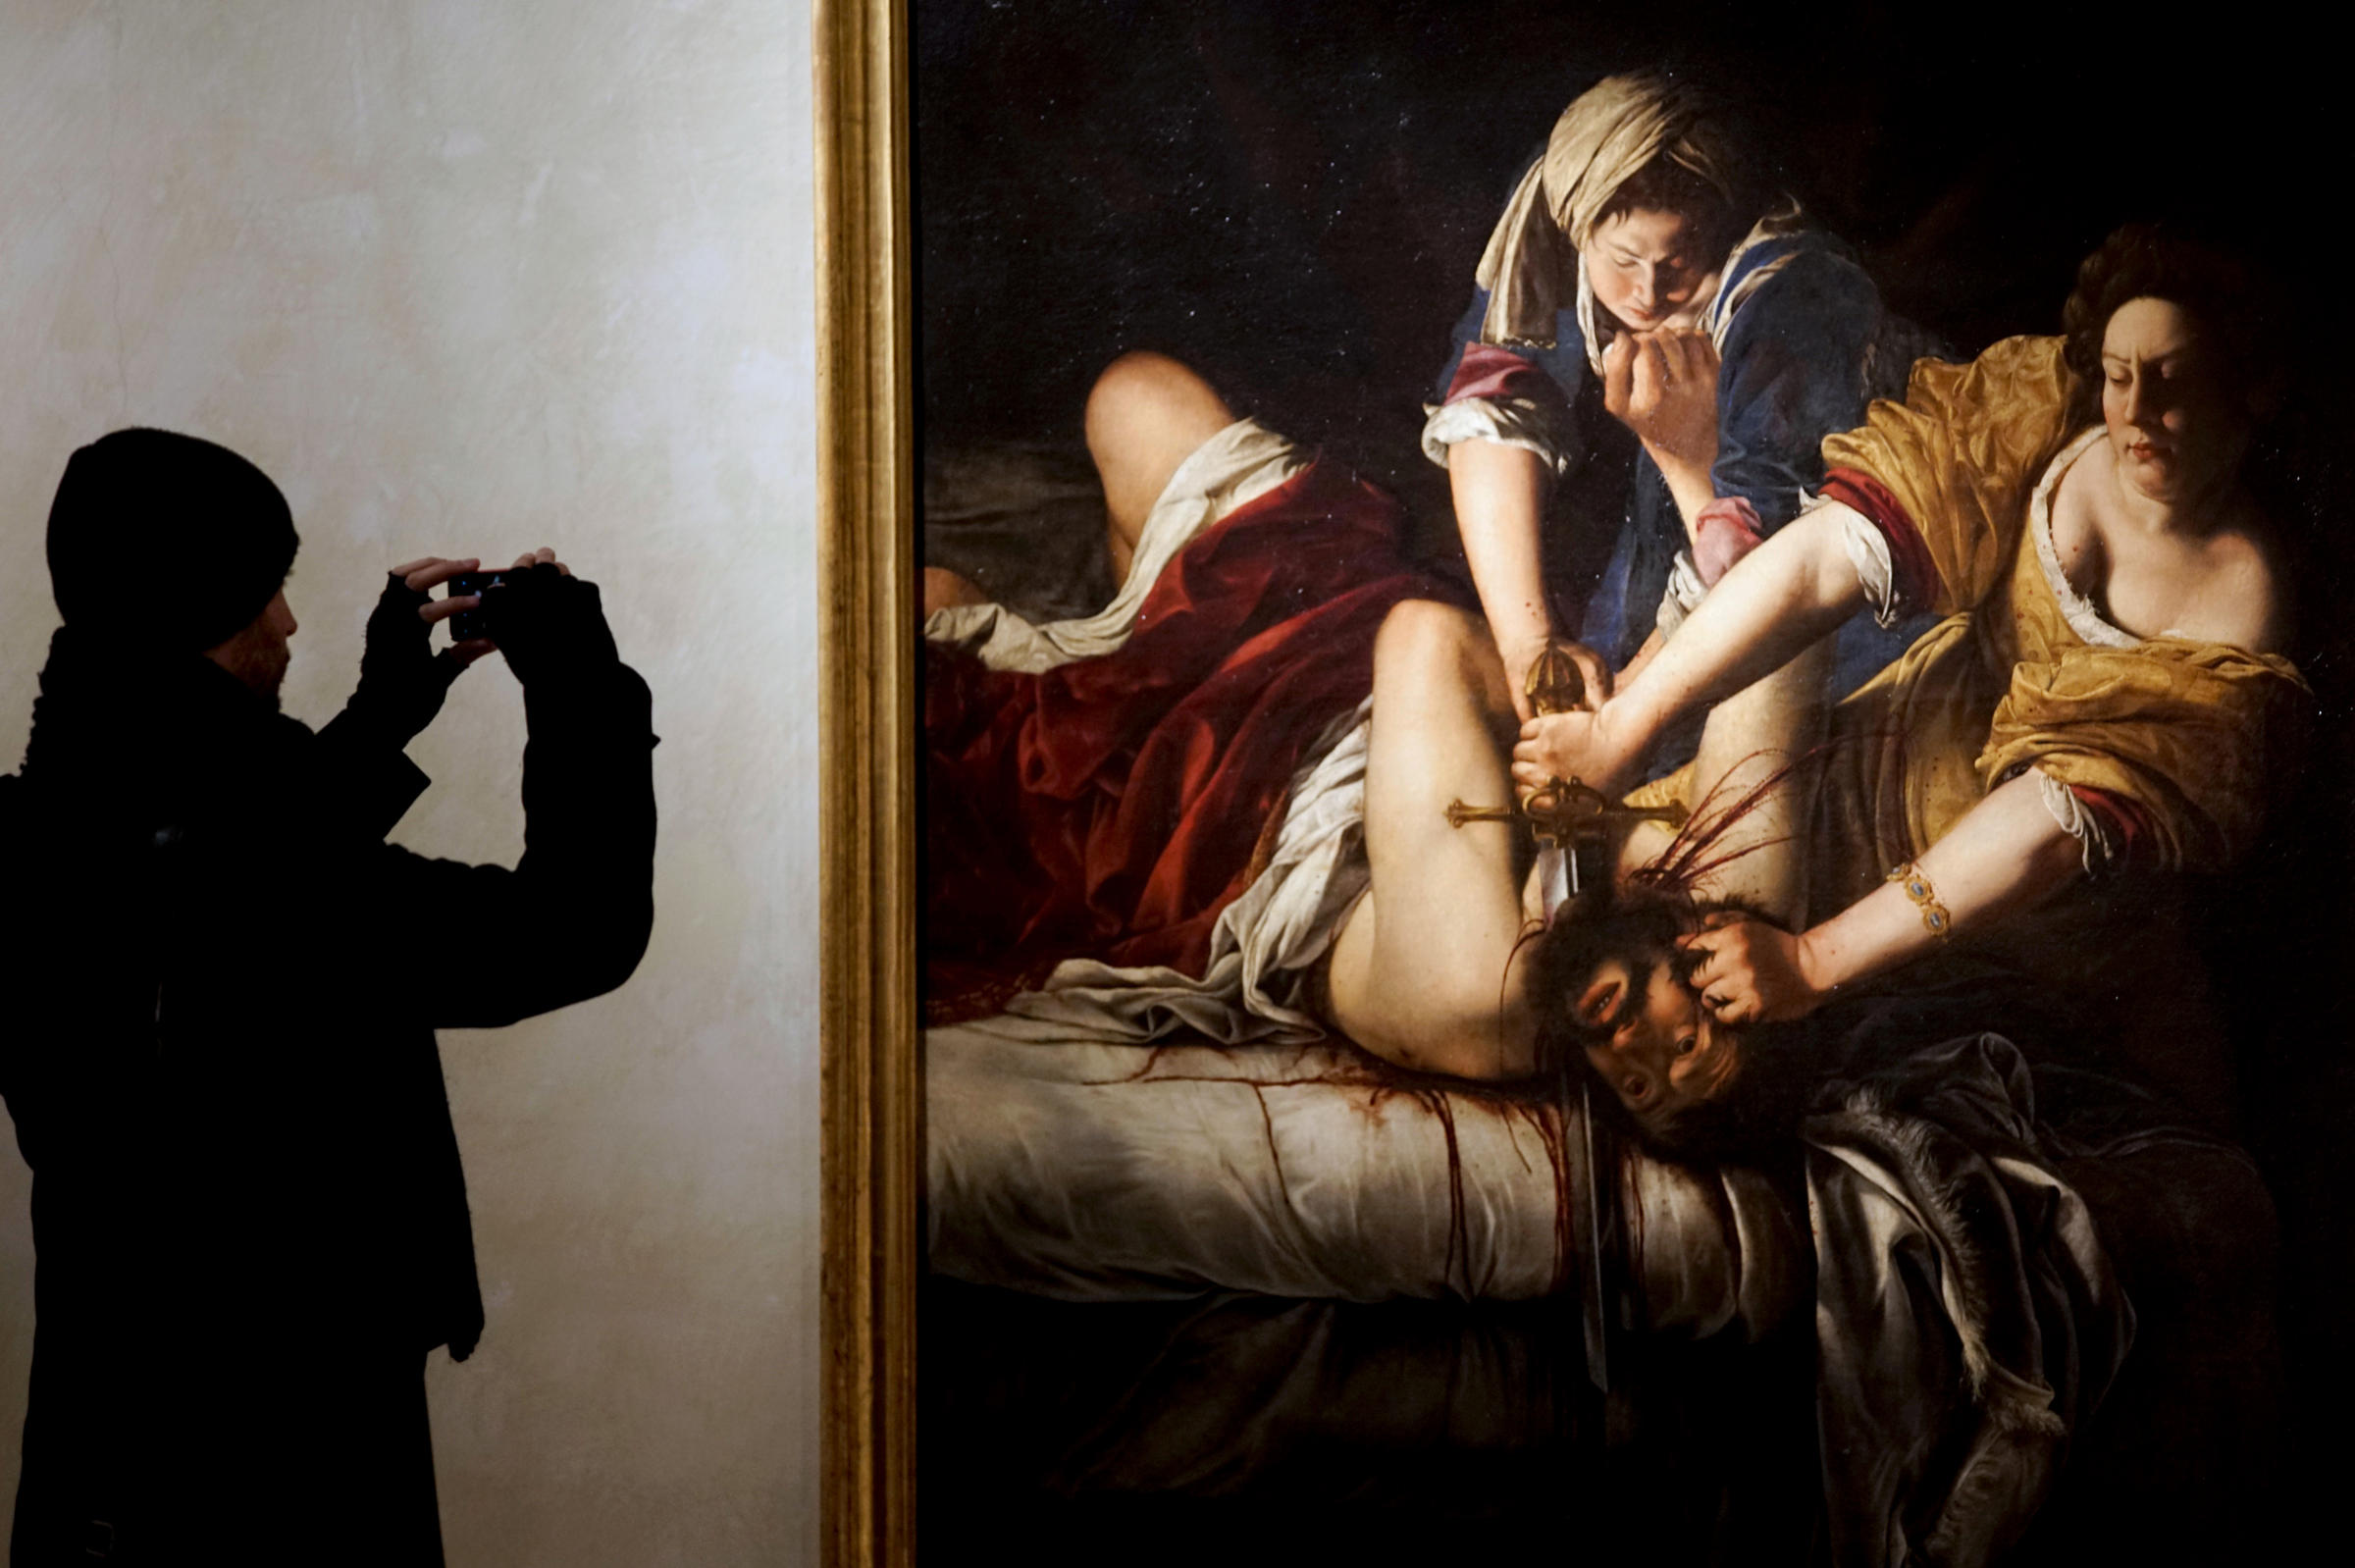 Long Seen As Victim, 17th Century Italian Painter Emerges As